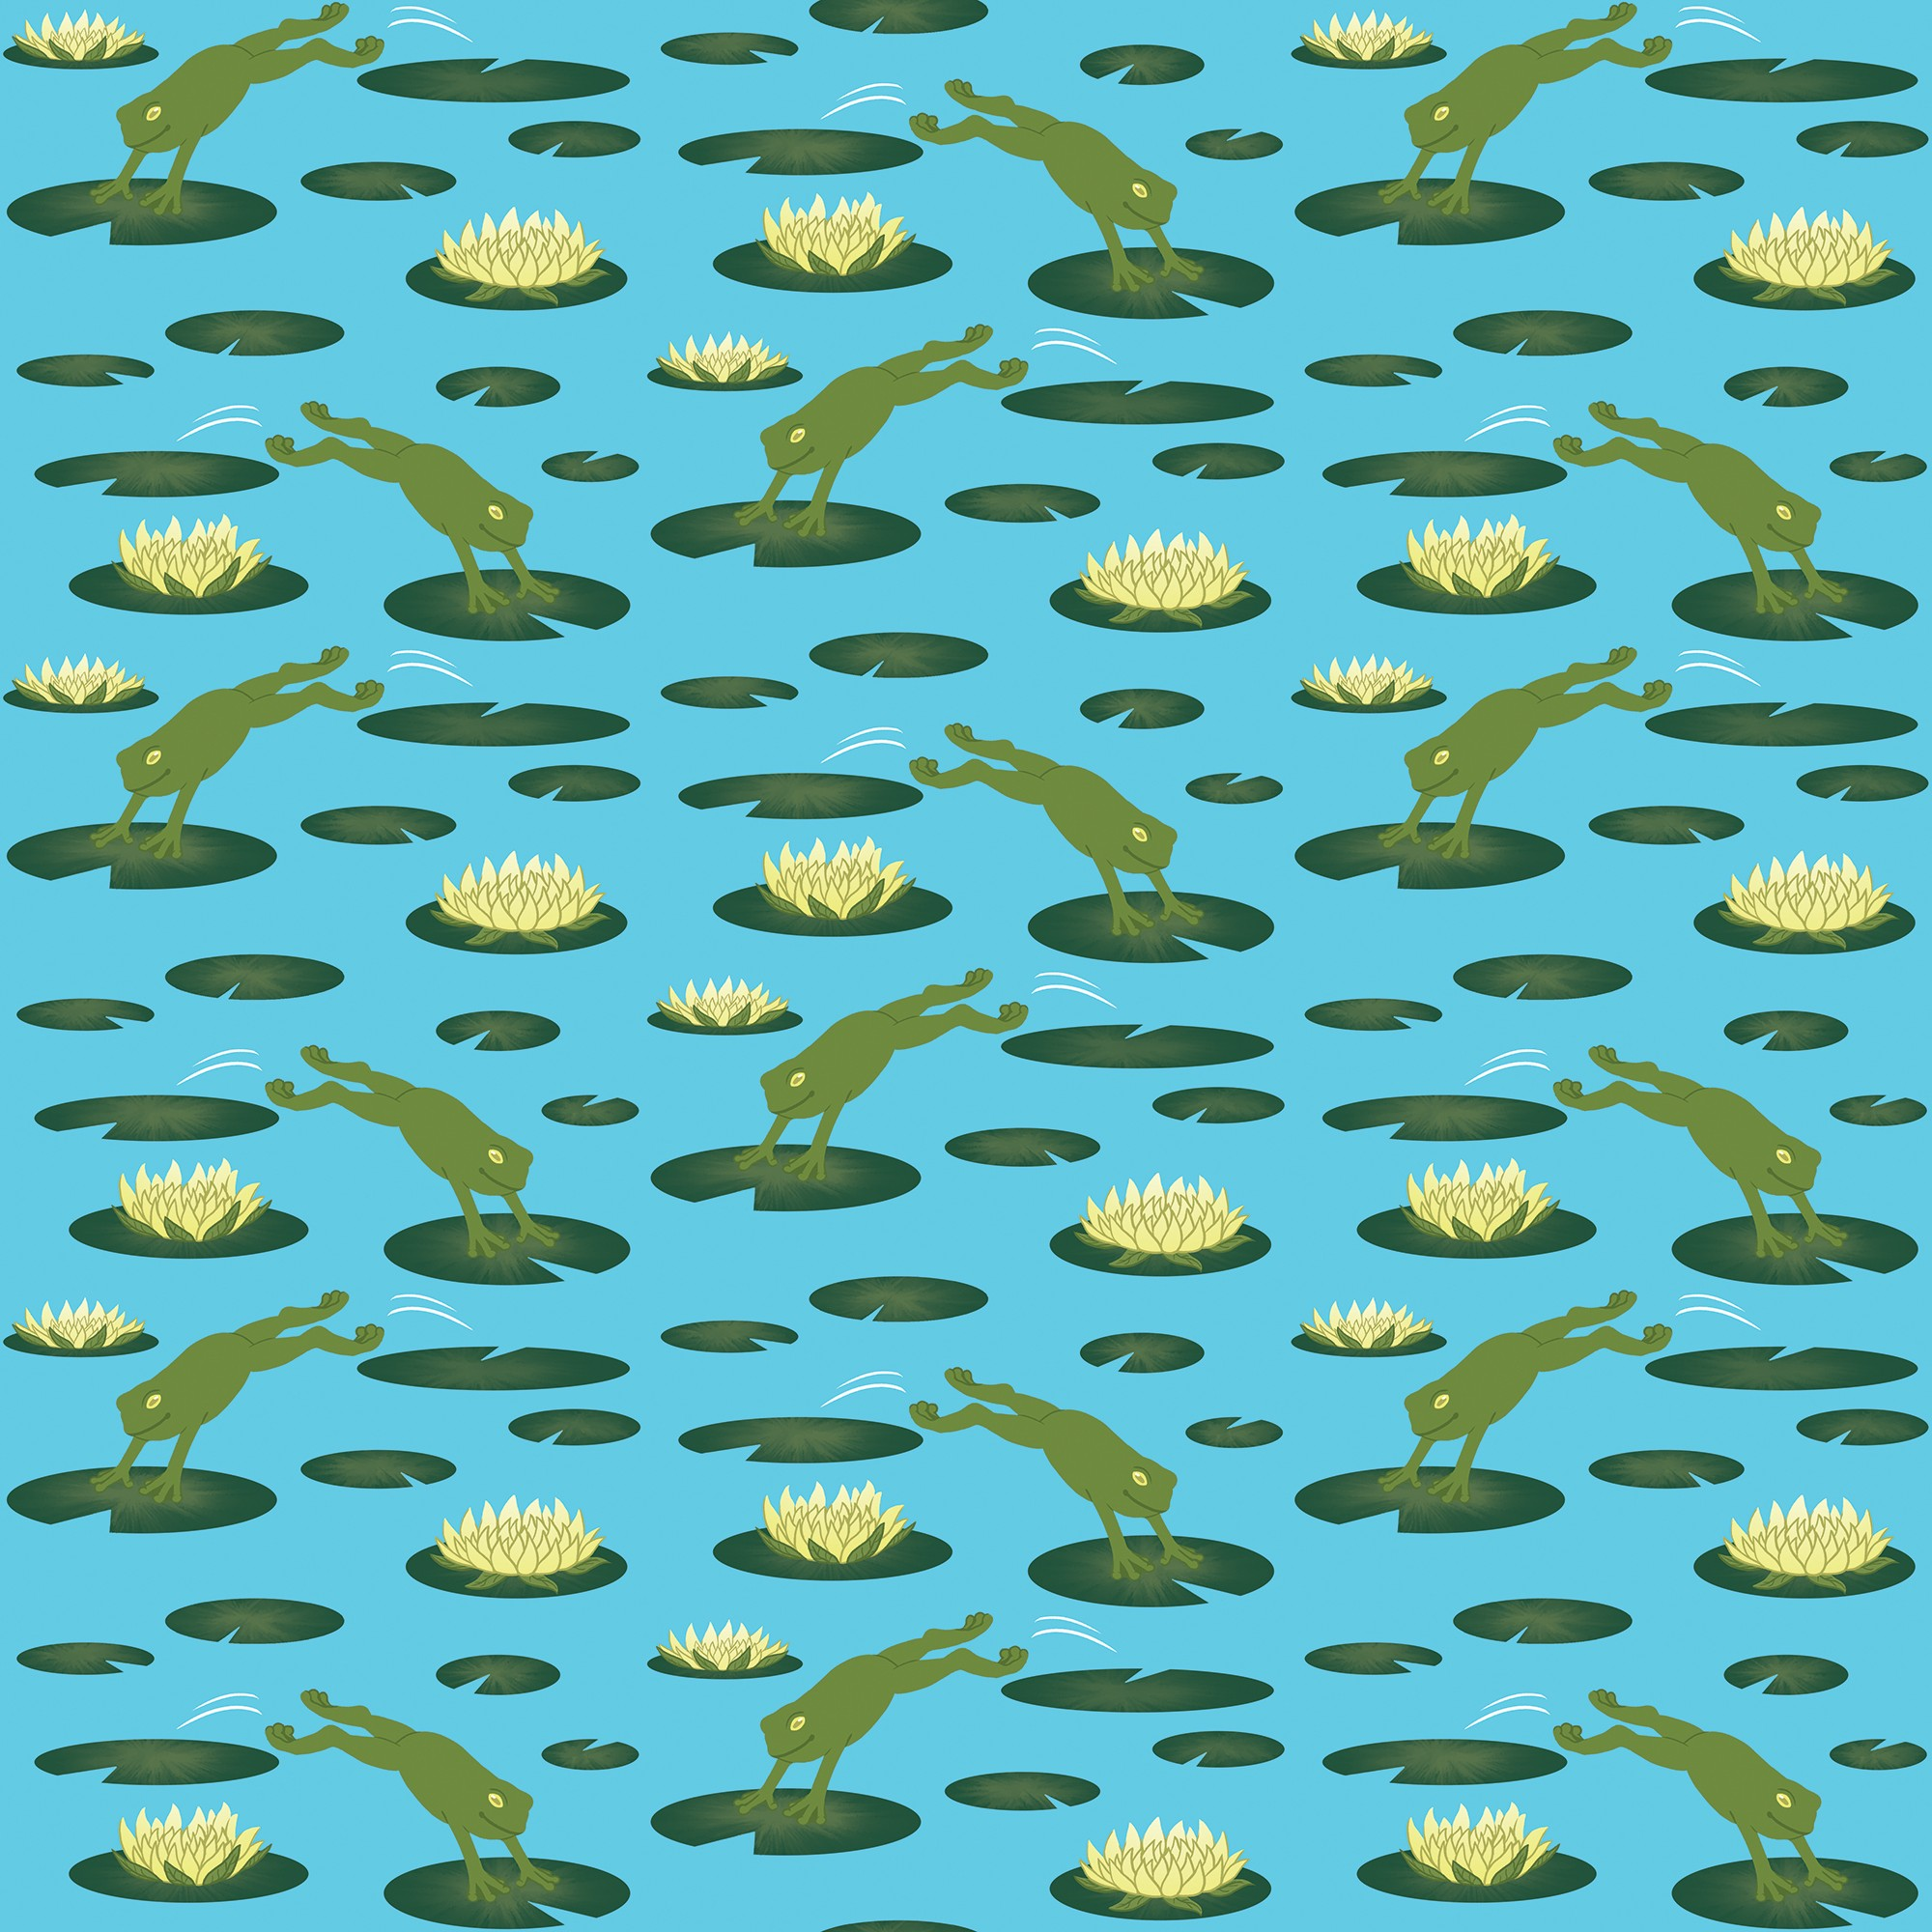 Repeating pattern of frogs jumping from lily pad to lily pad.